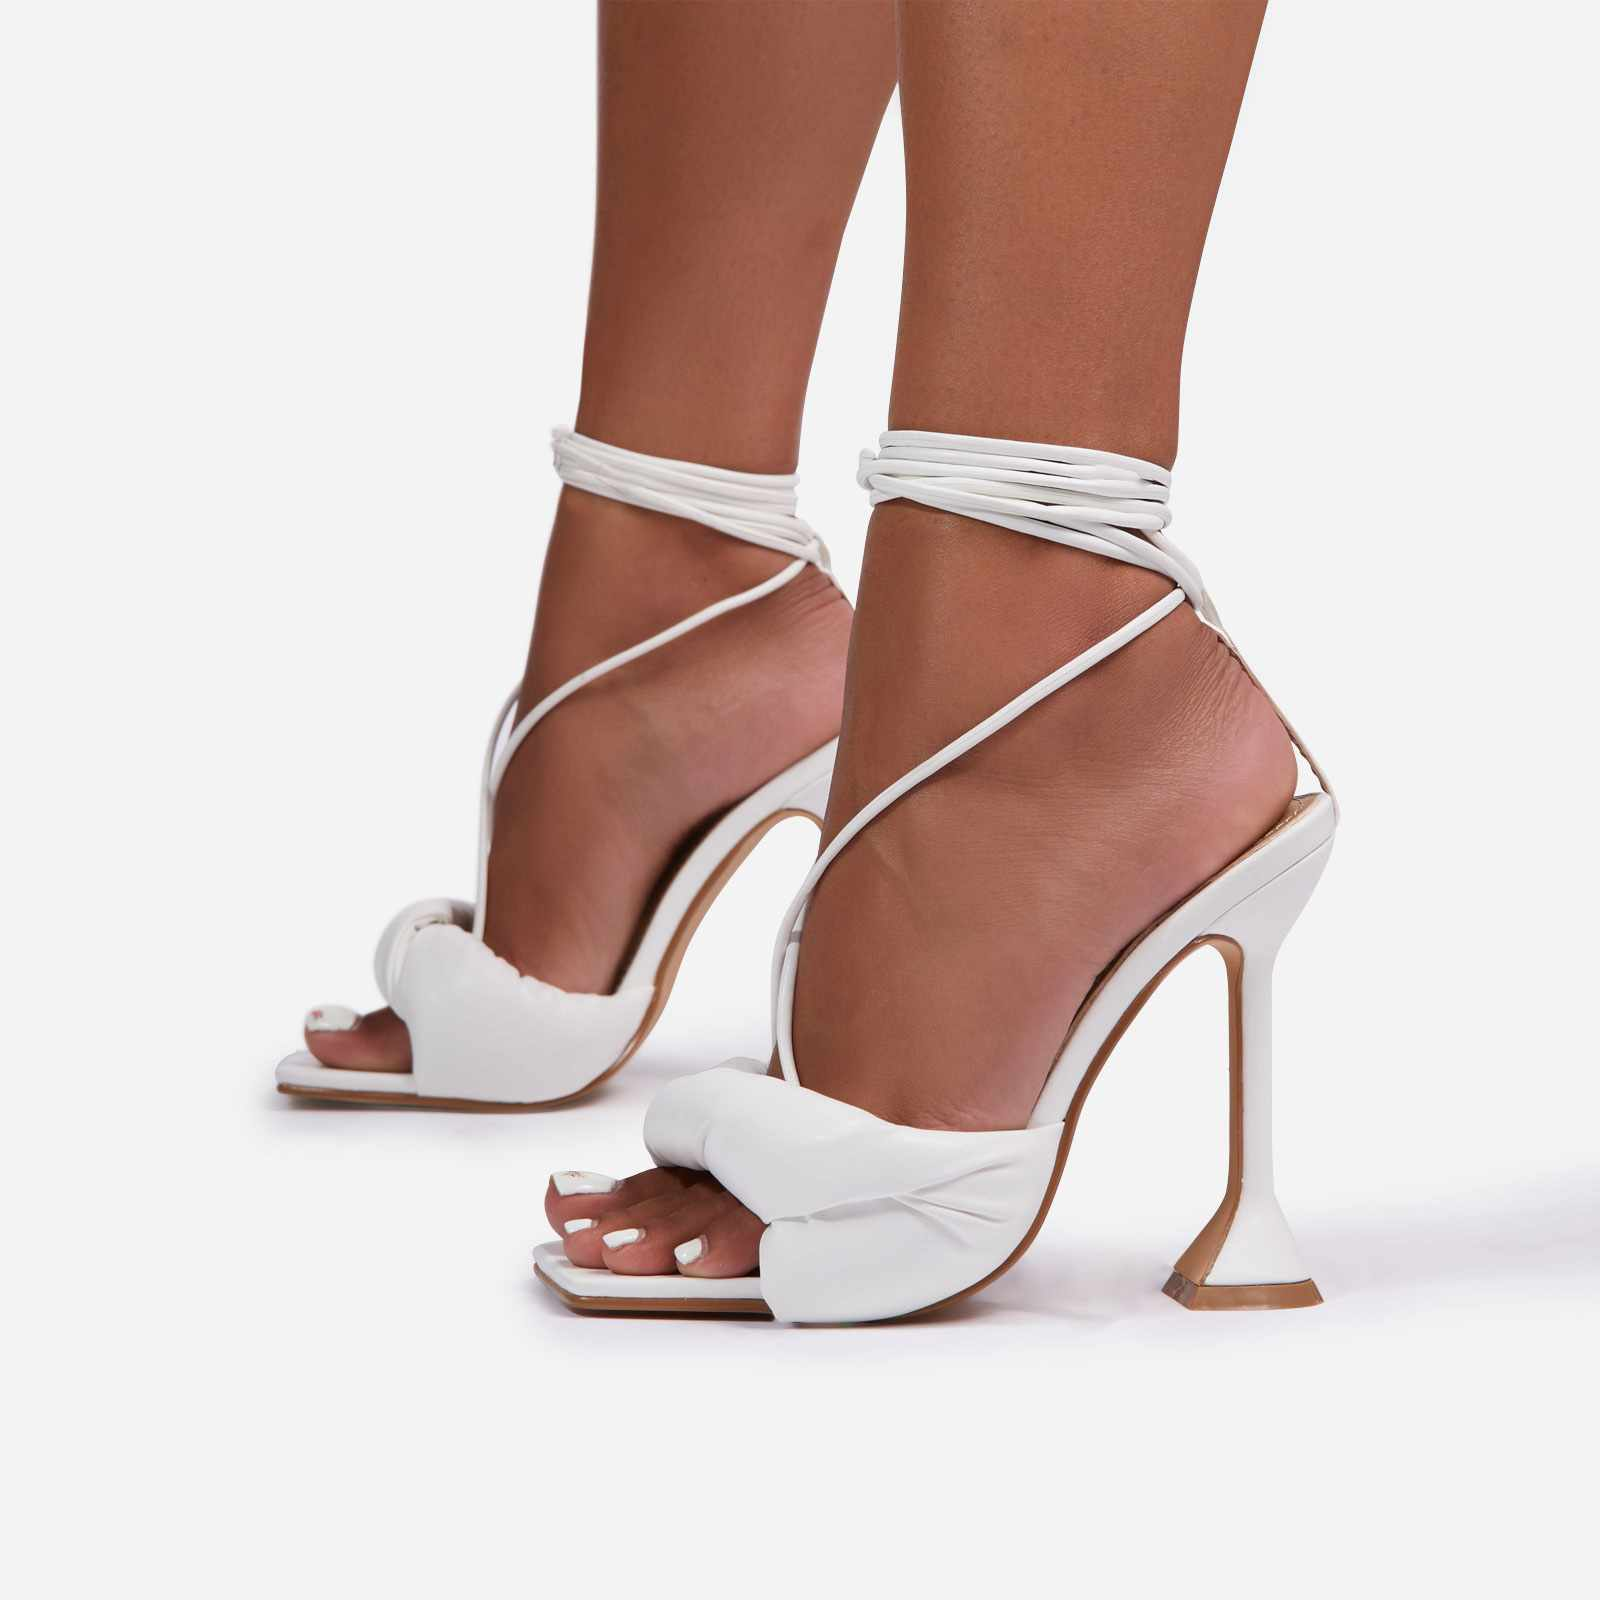 New-Moon Padded Lace Up Square Toe Pyramid Heel In White Faux Leather